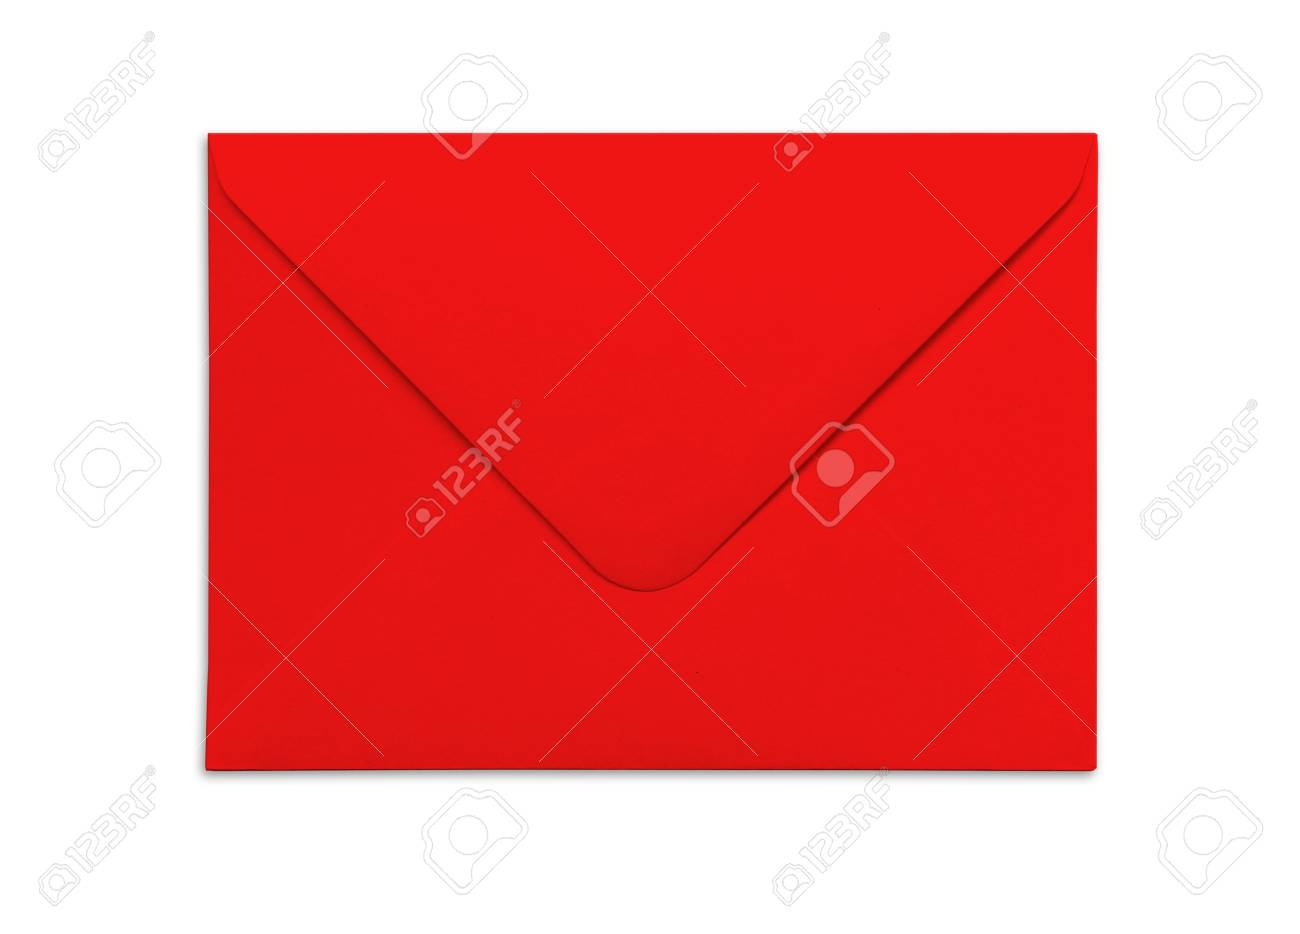 blank red envelope isolated on white background with shadows